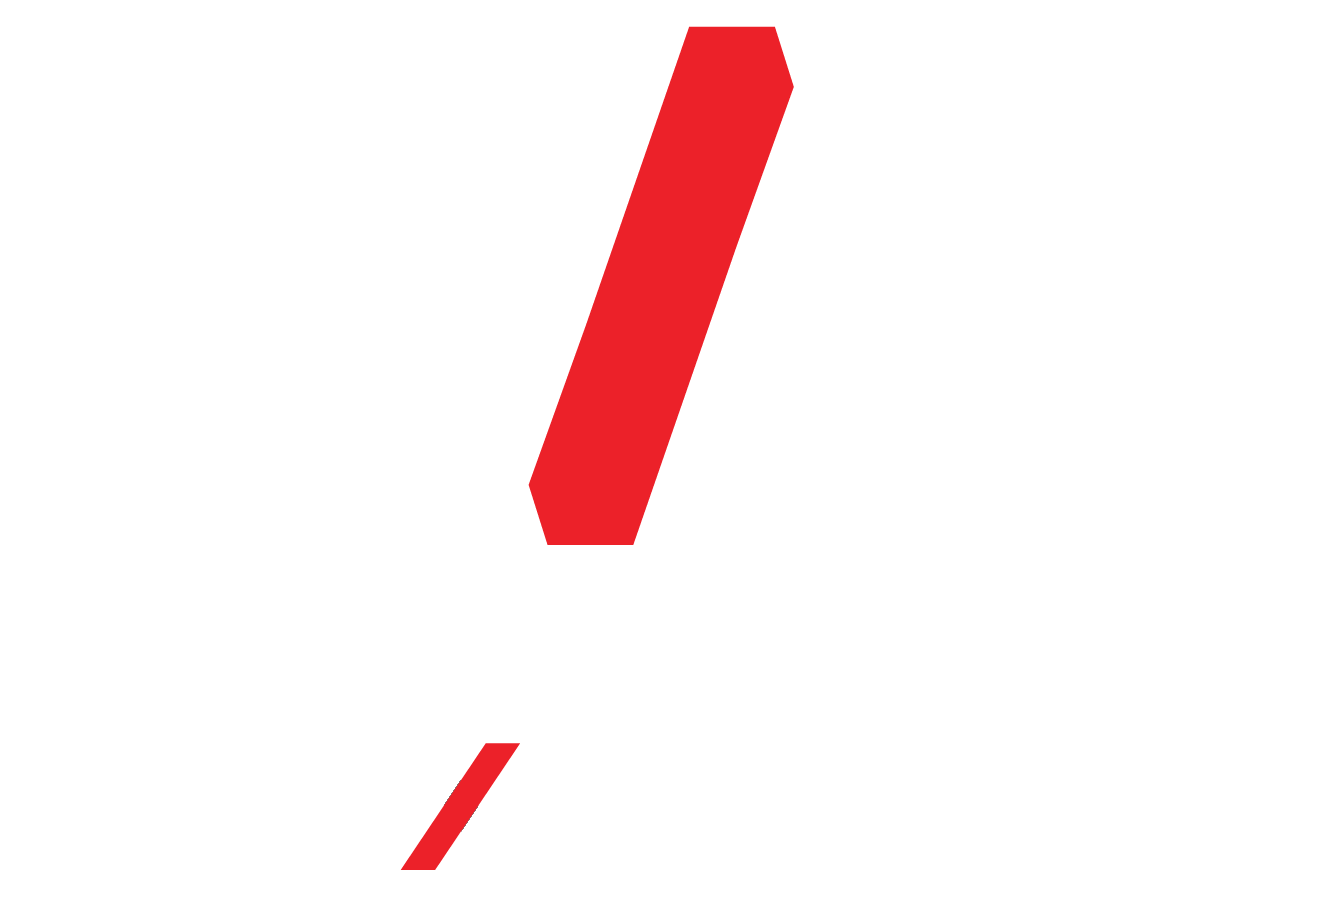 Web Marketing EXPO - l\'Eccellenza Italiana del Web Marketing